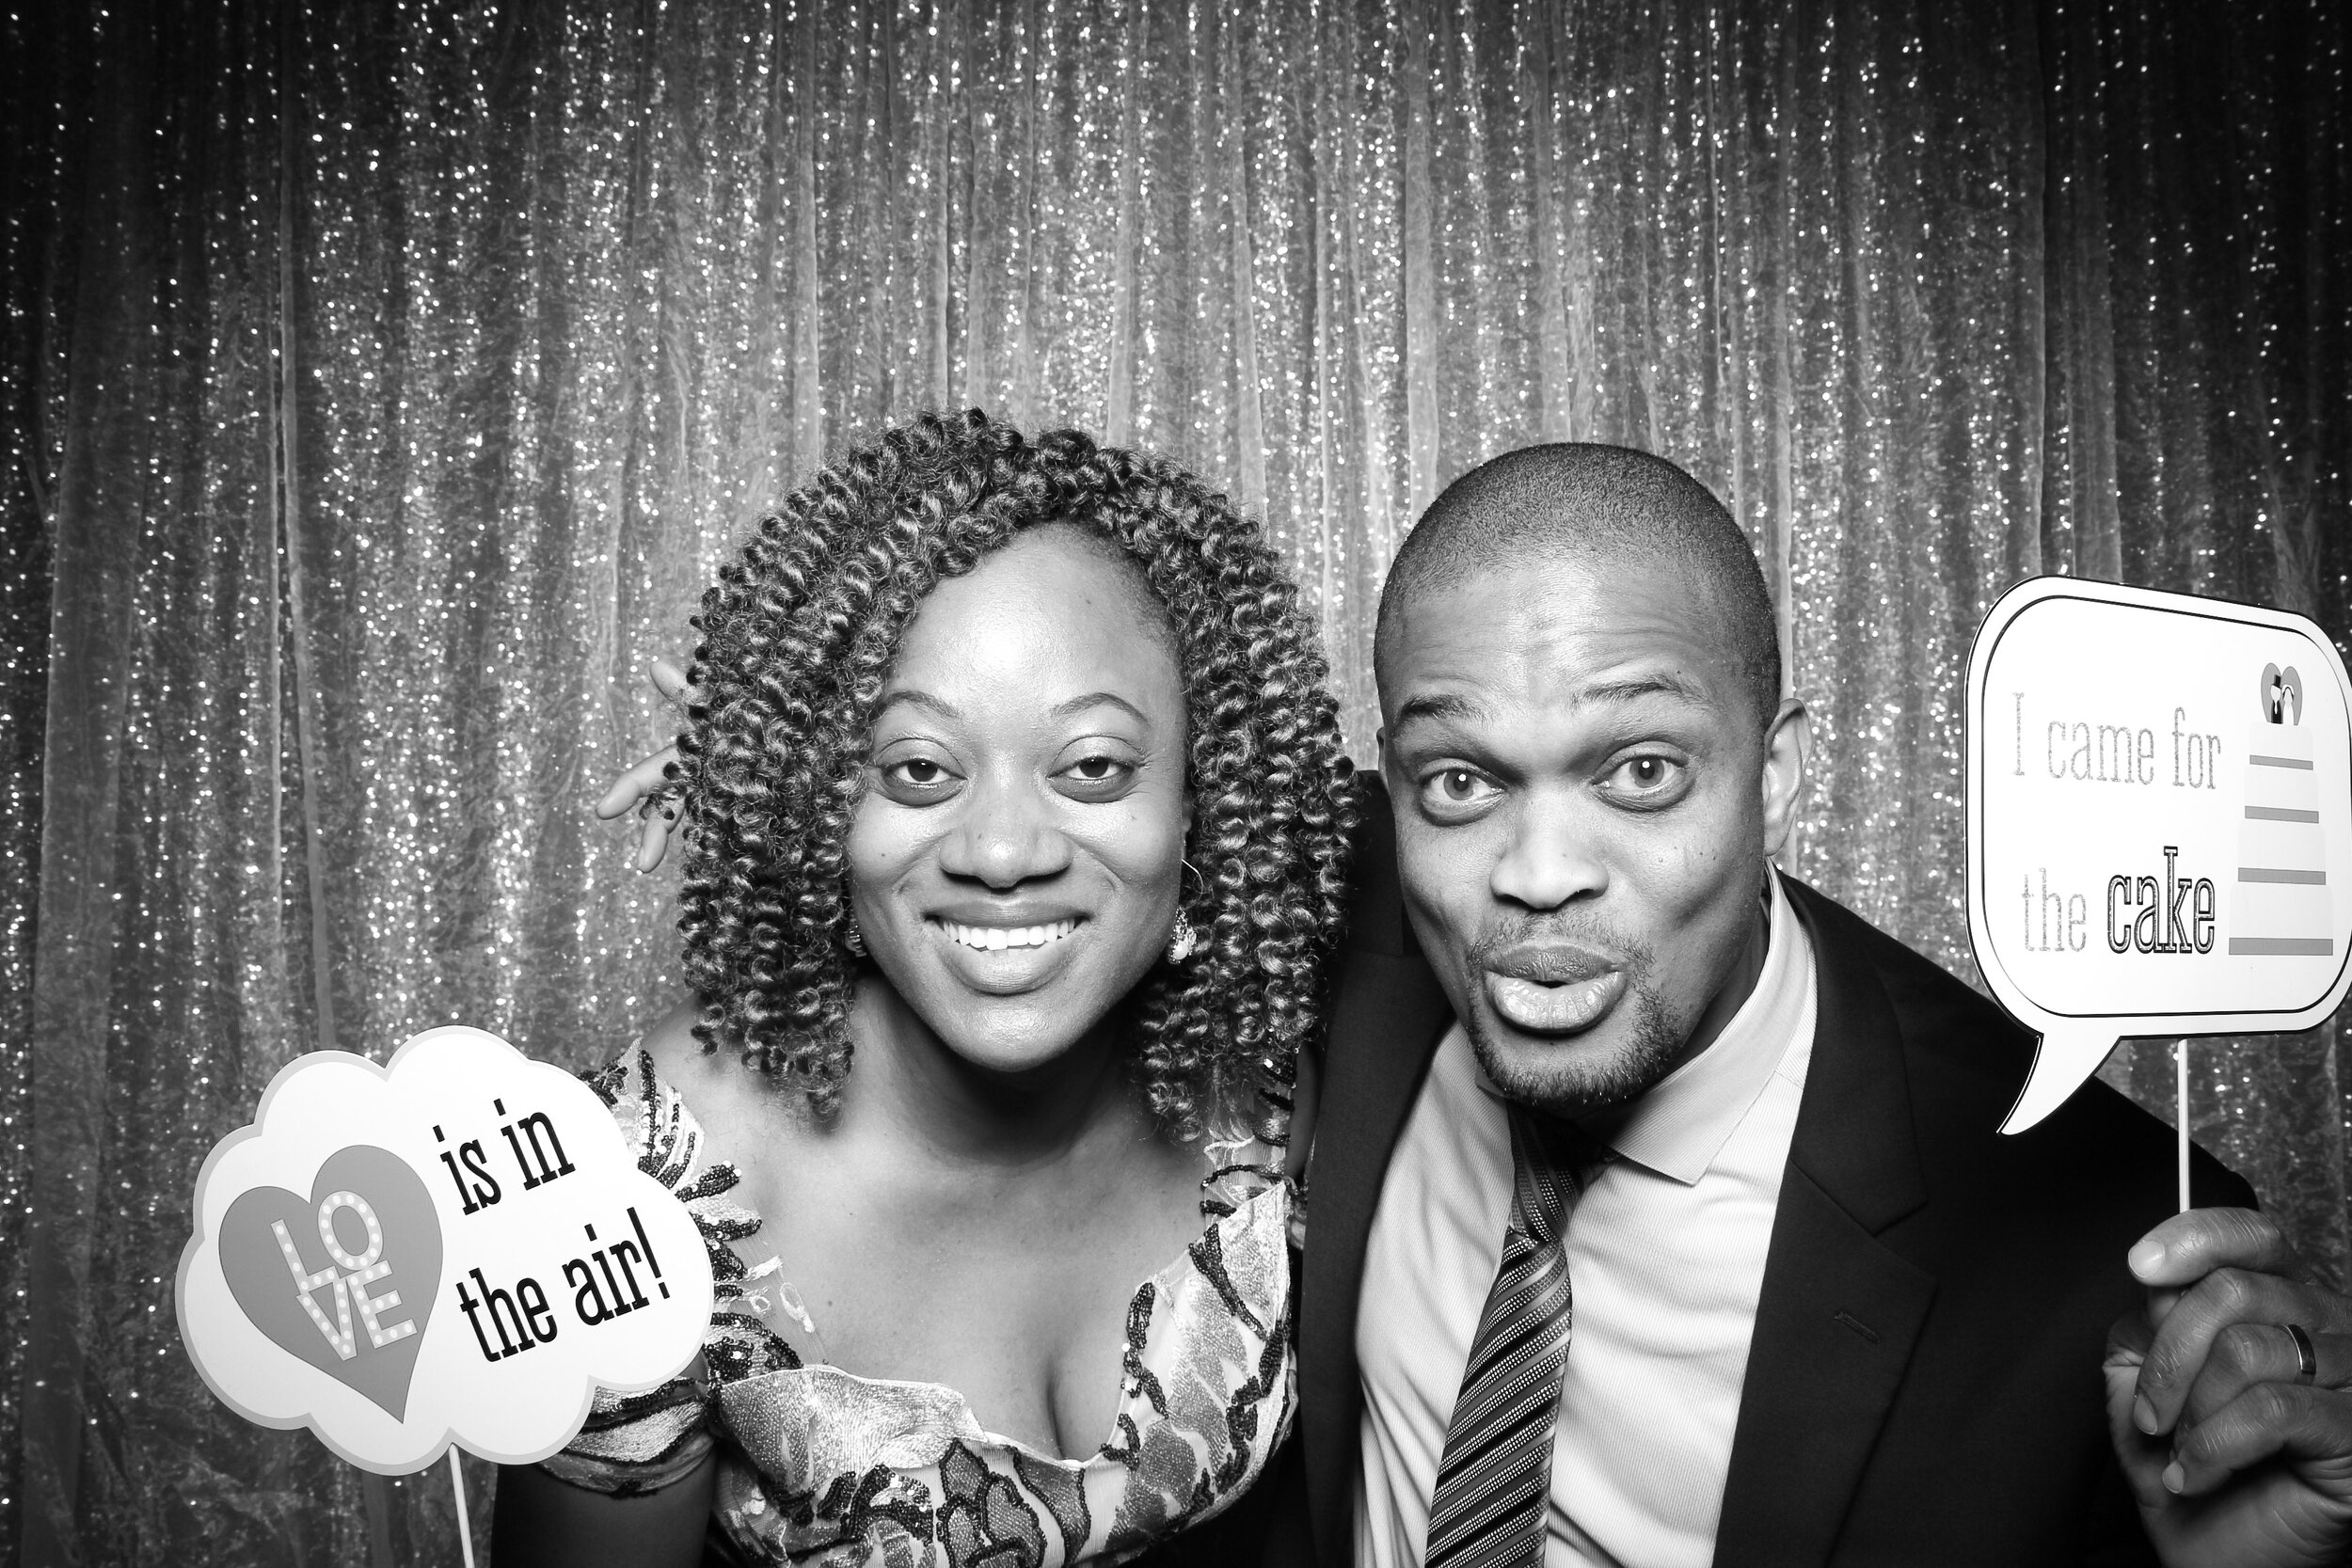 Ravisloe_Country_Club_Wedding_Photo_Booth_07.jpg